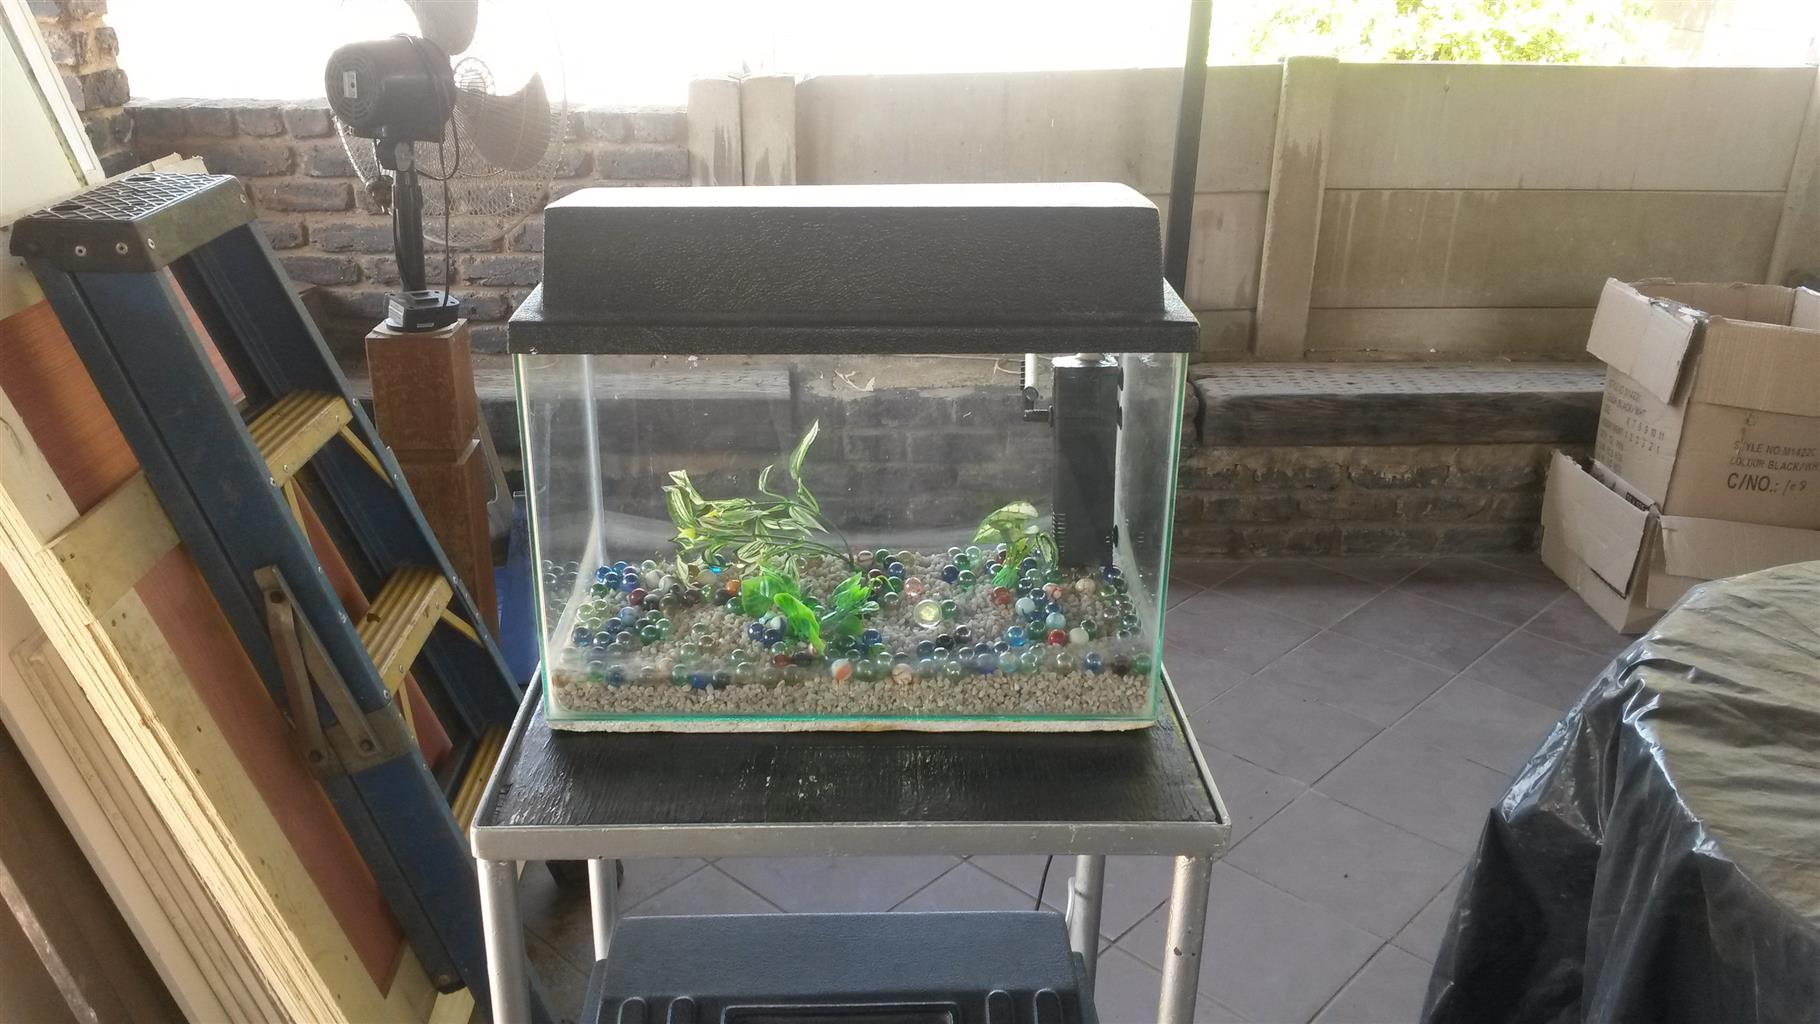 2 fish tanks on stand